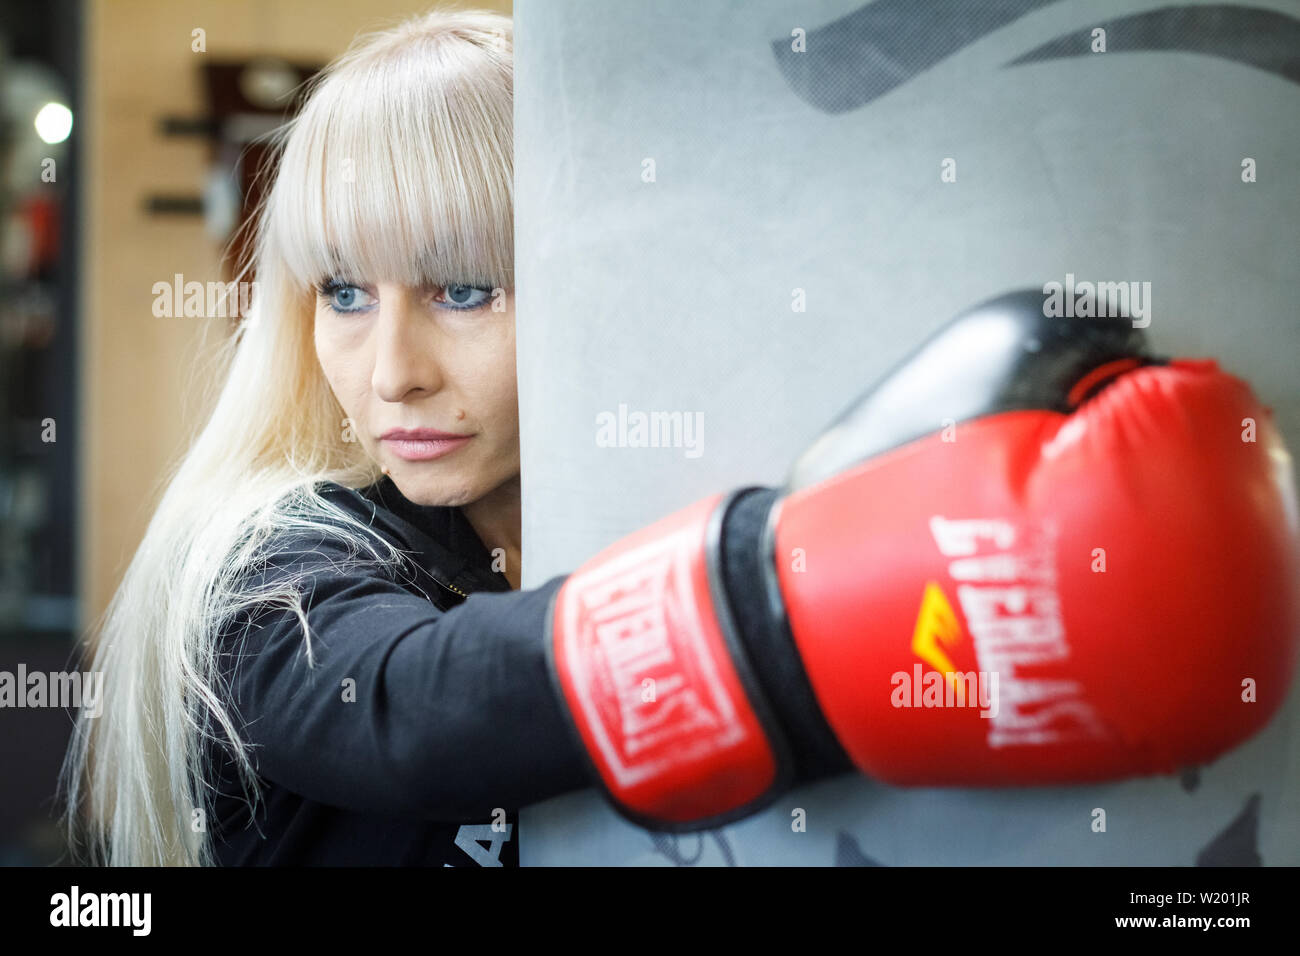 Woman Punch In The Face Stock Photos Woman Punch In The